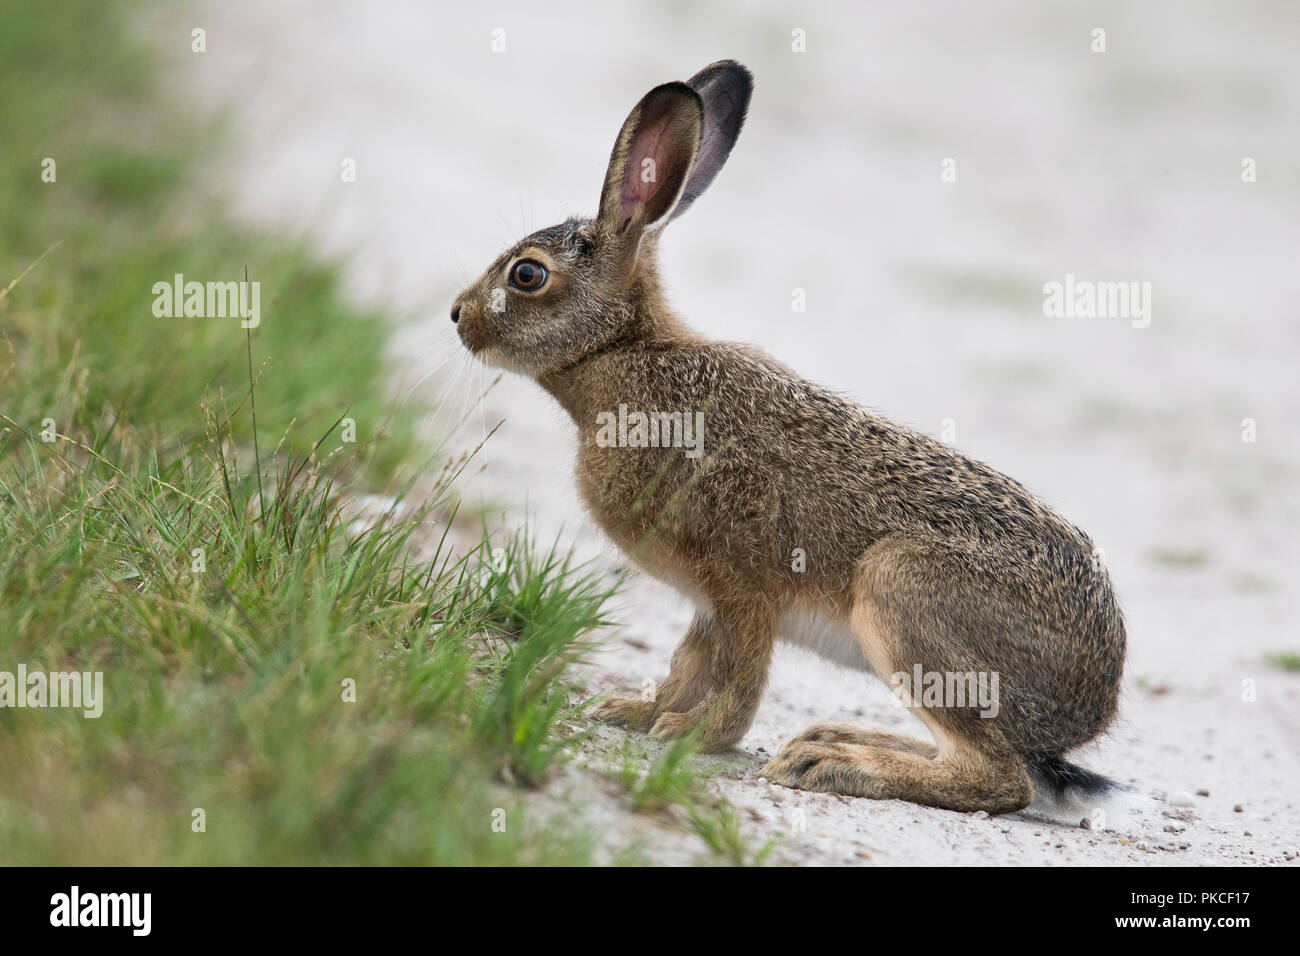 European hare (Lepus europaeus), young animal sits at the wayside, Emsland, Lower Saxony, Germany - Stock Image